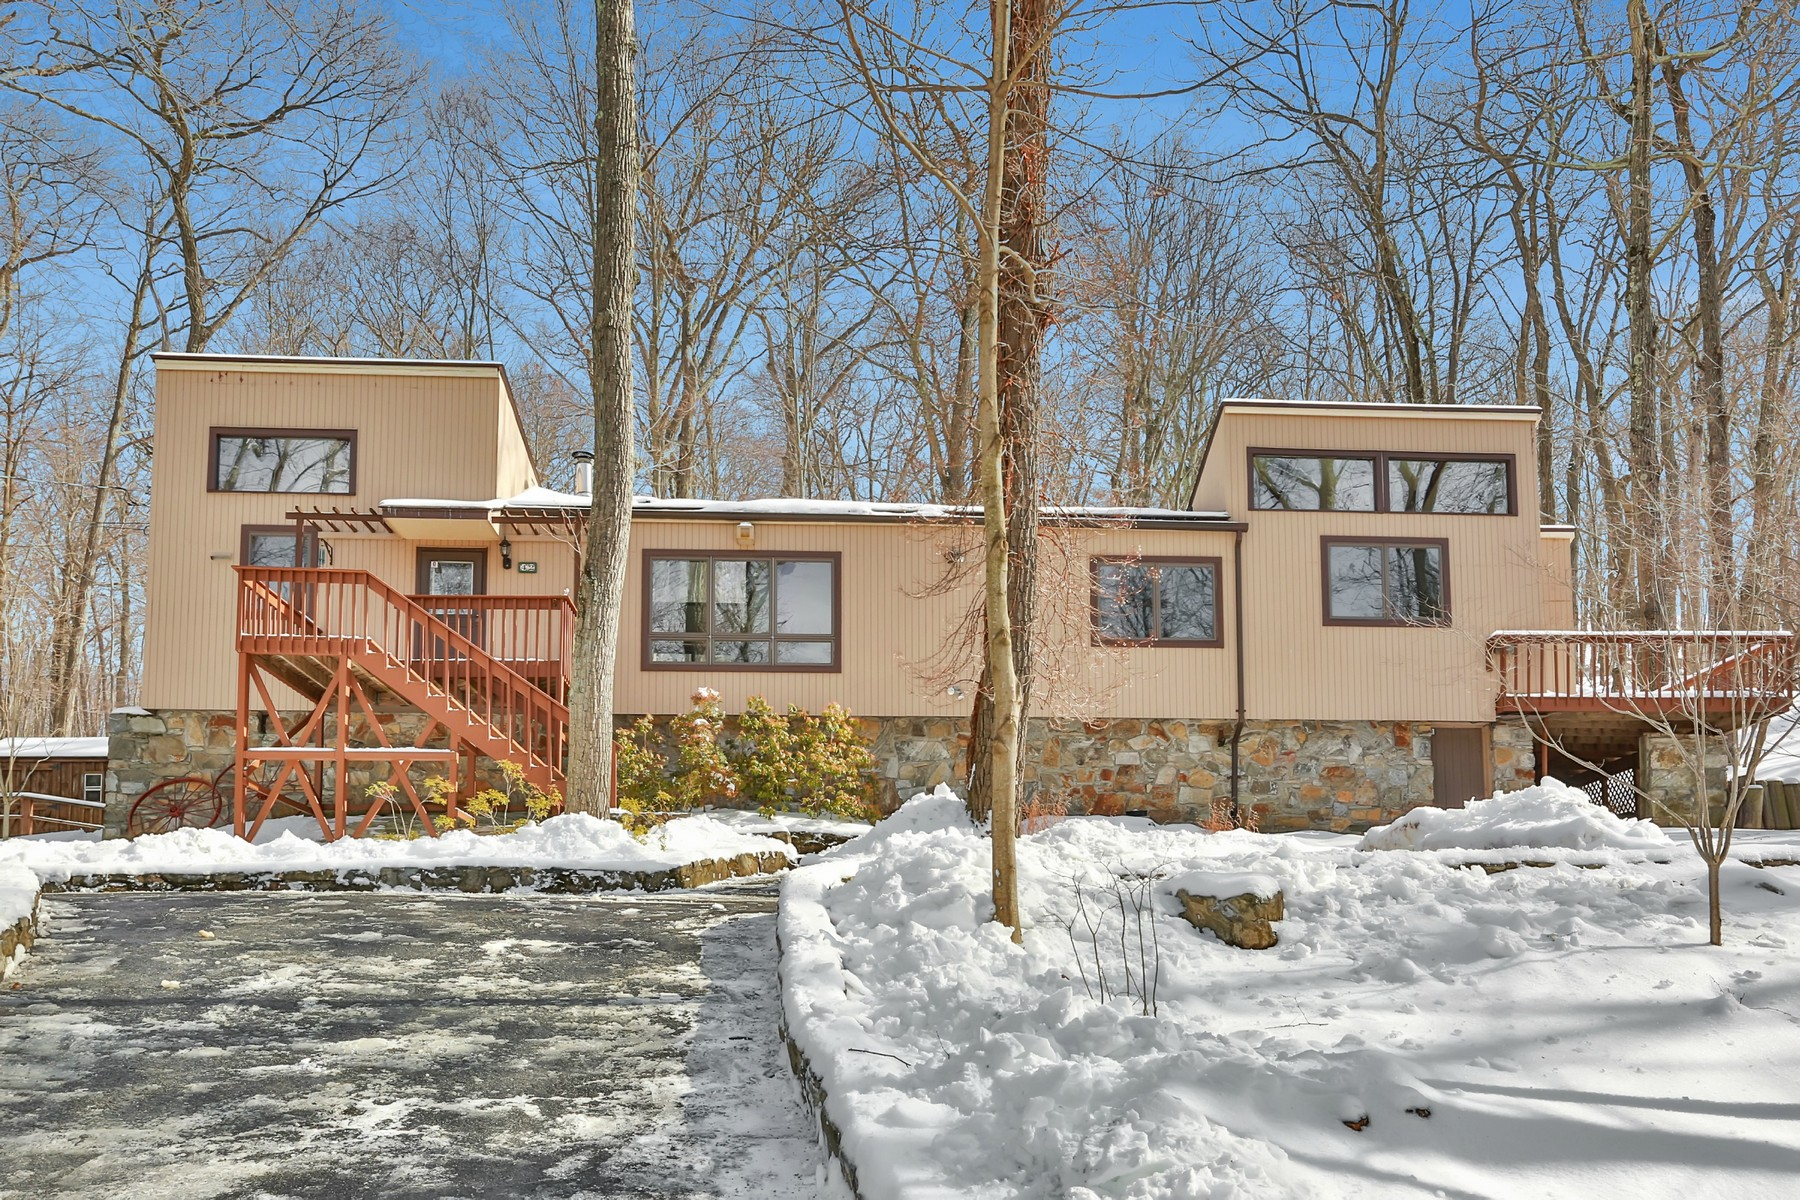 Single Family Home for Sale at Inspired By Nature 42 Far Reach Trail Putnam Valley, New York, 10579 United States